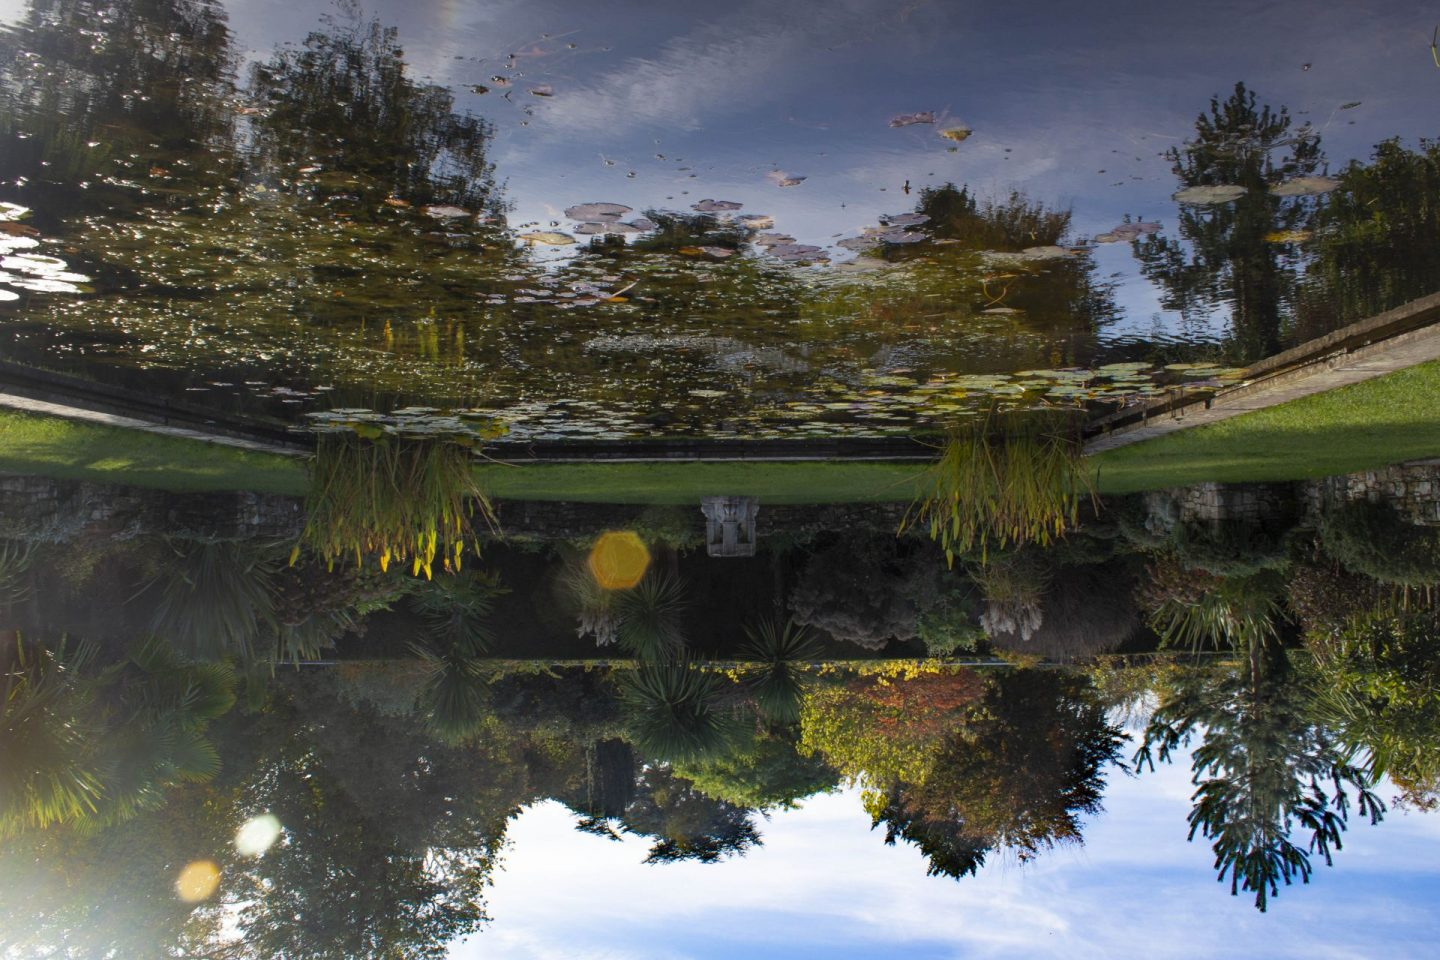 upside down, upside down camera, wrong way up image, photography, picture